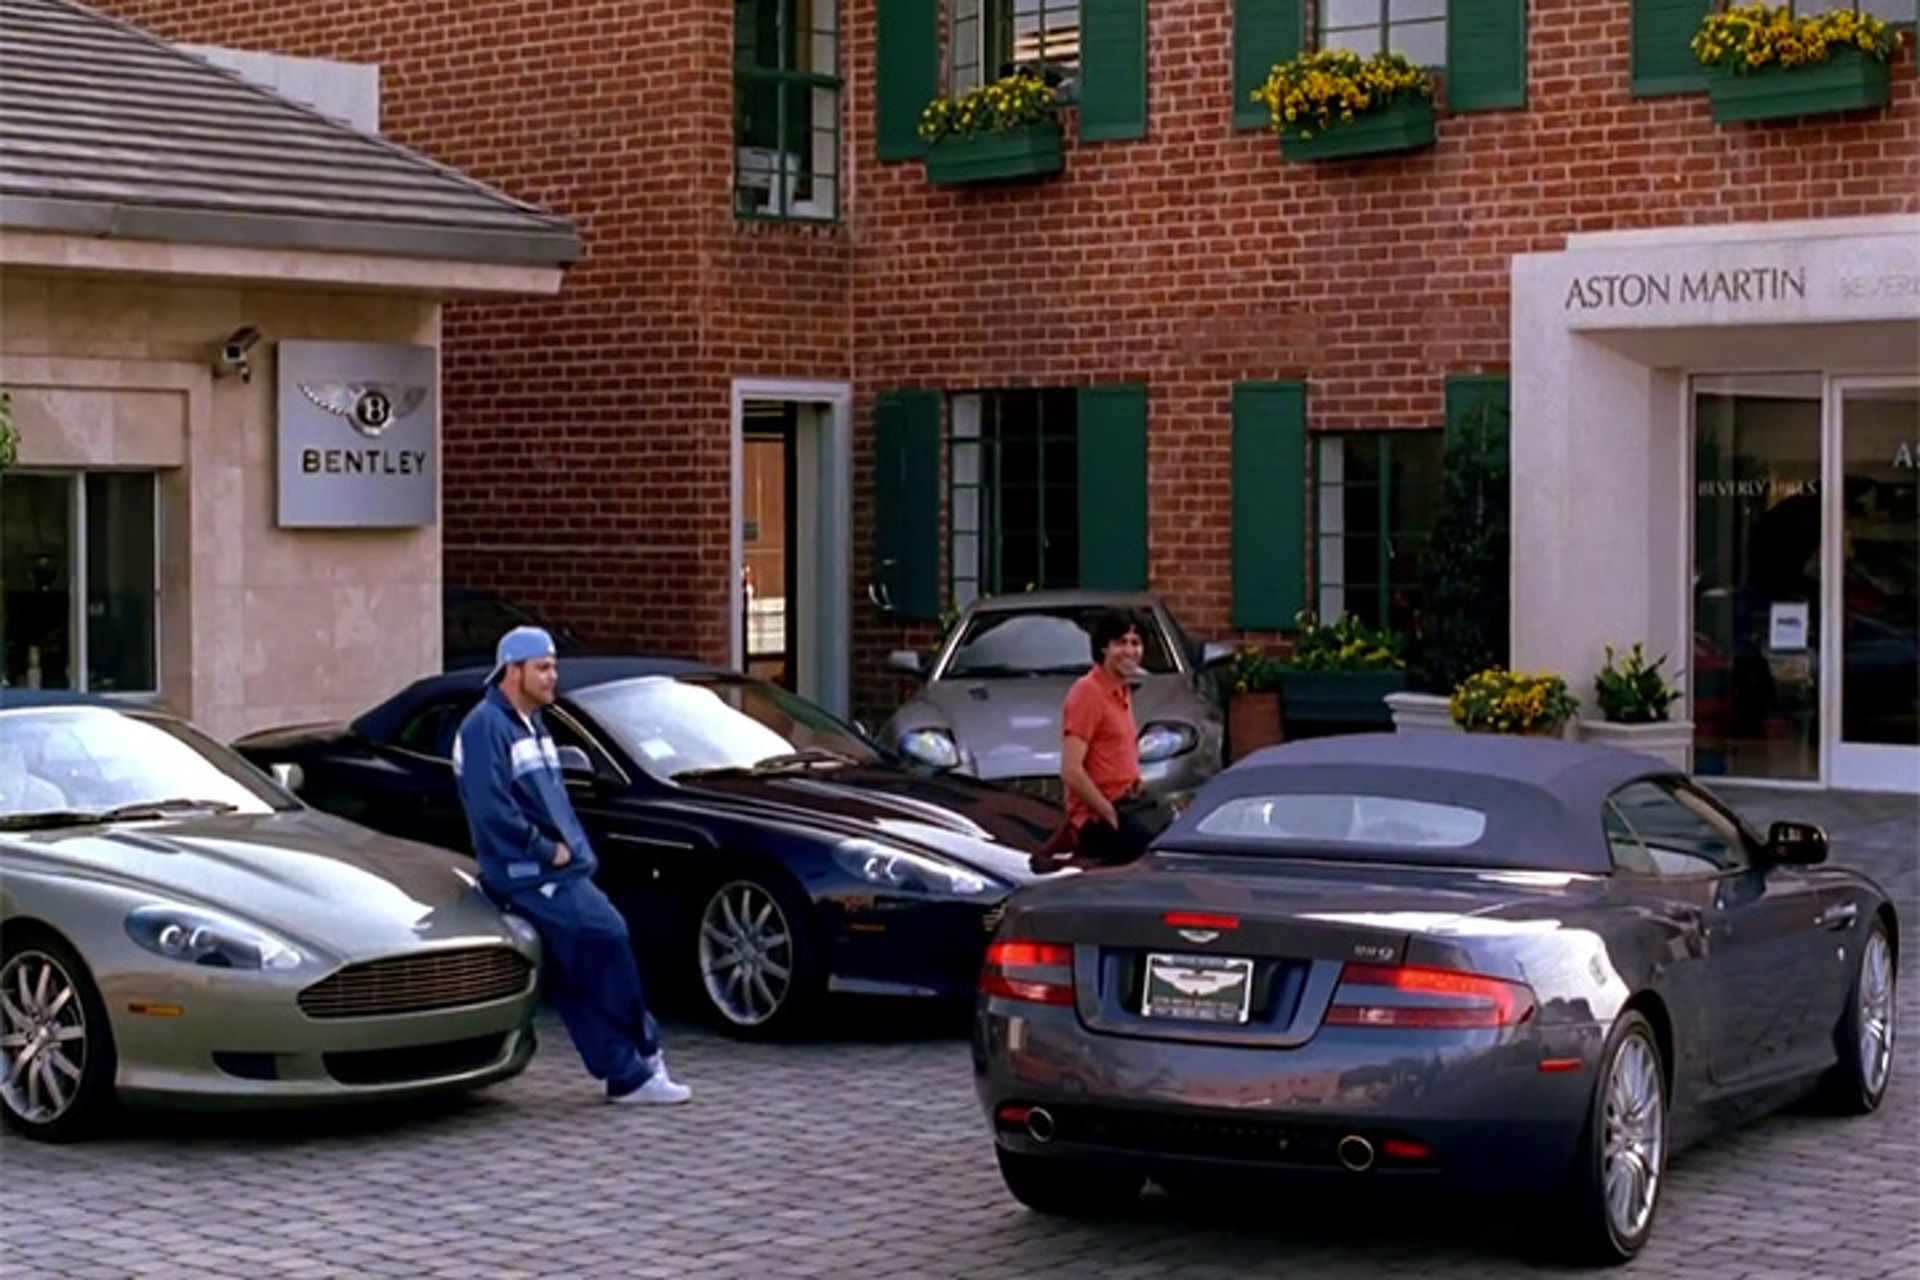 6 Best Car Scenes From the 'Entourage' Series